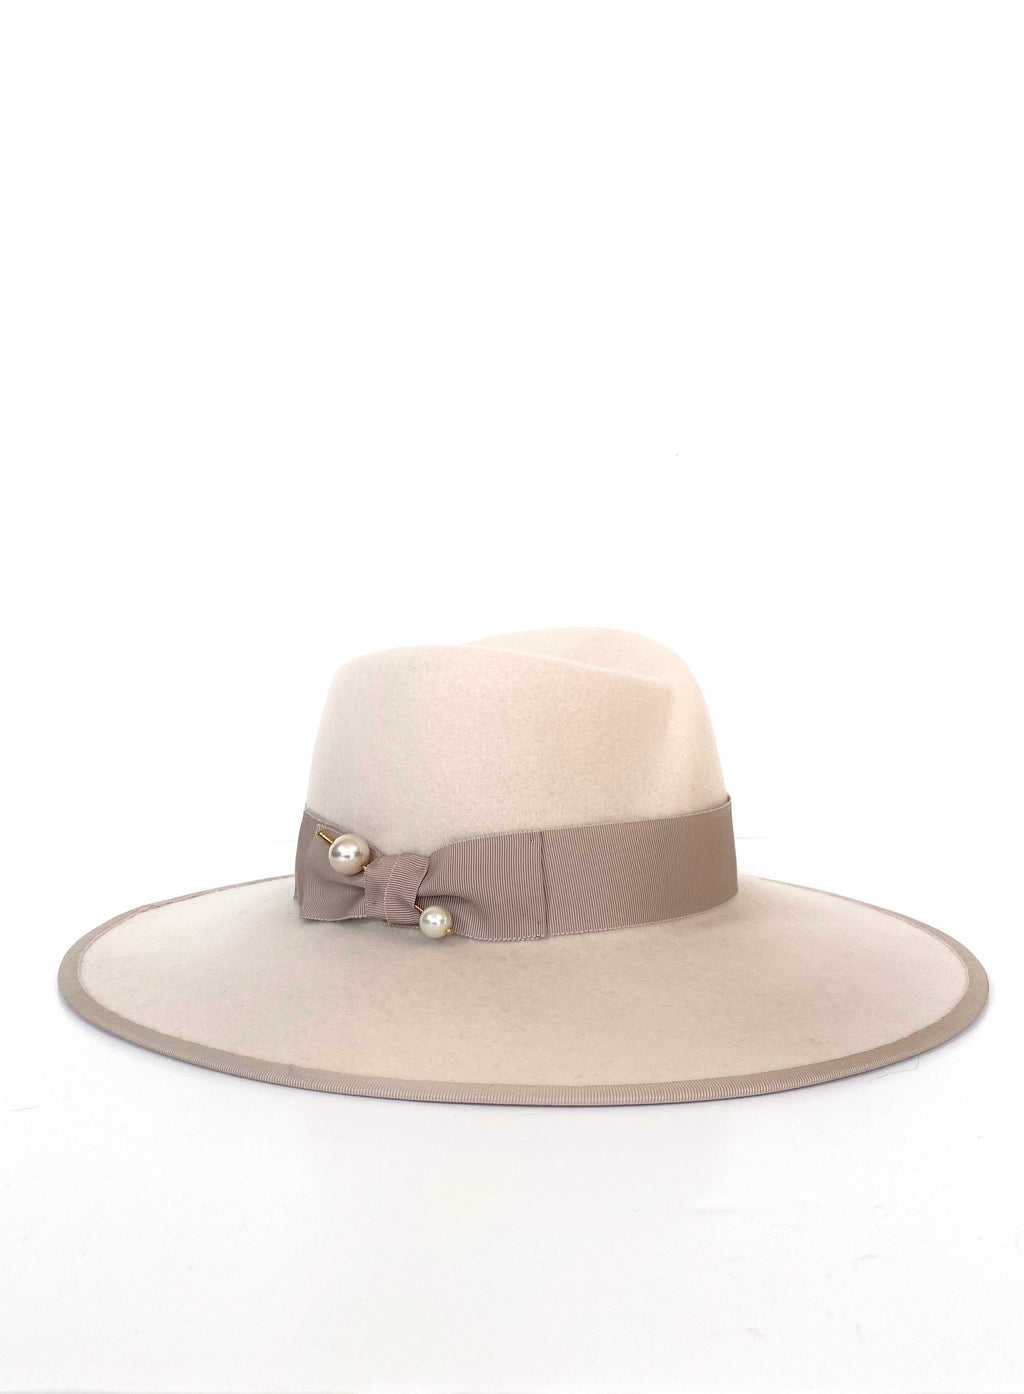 Felt Fedora - off white